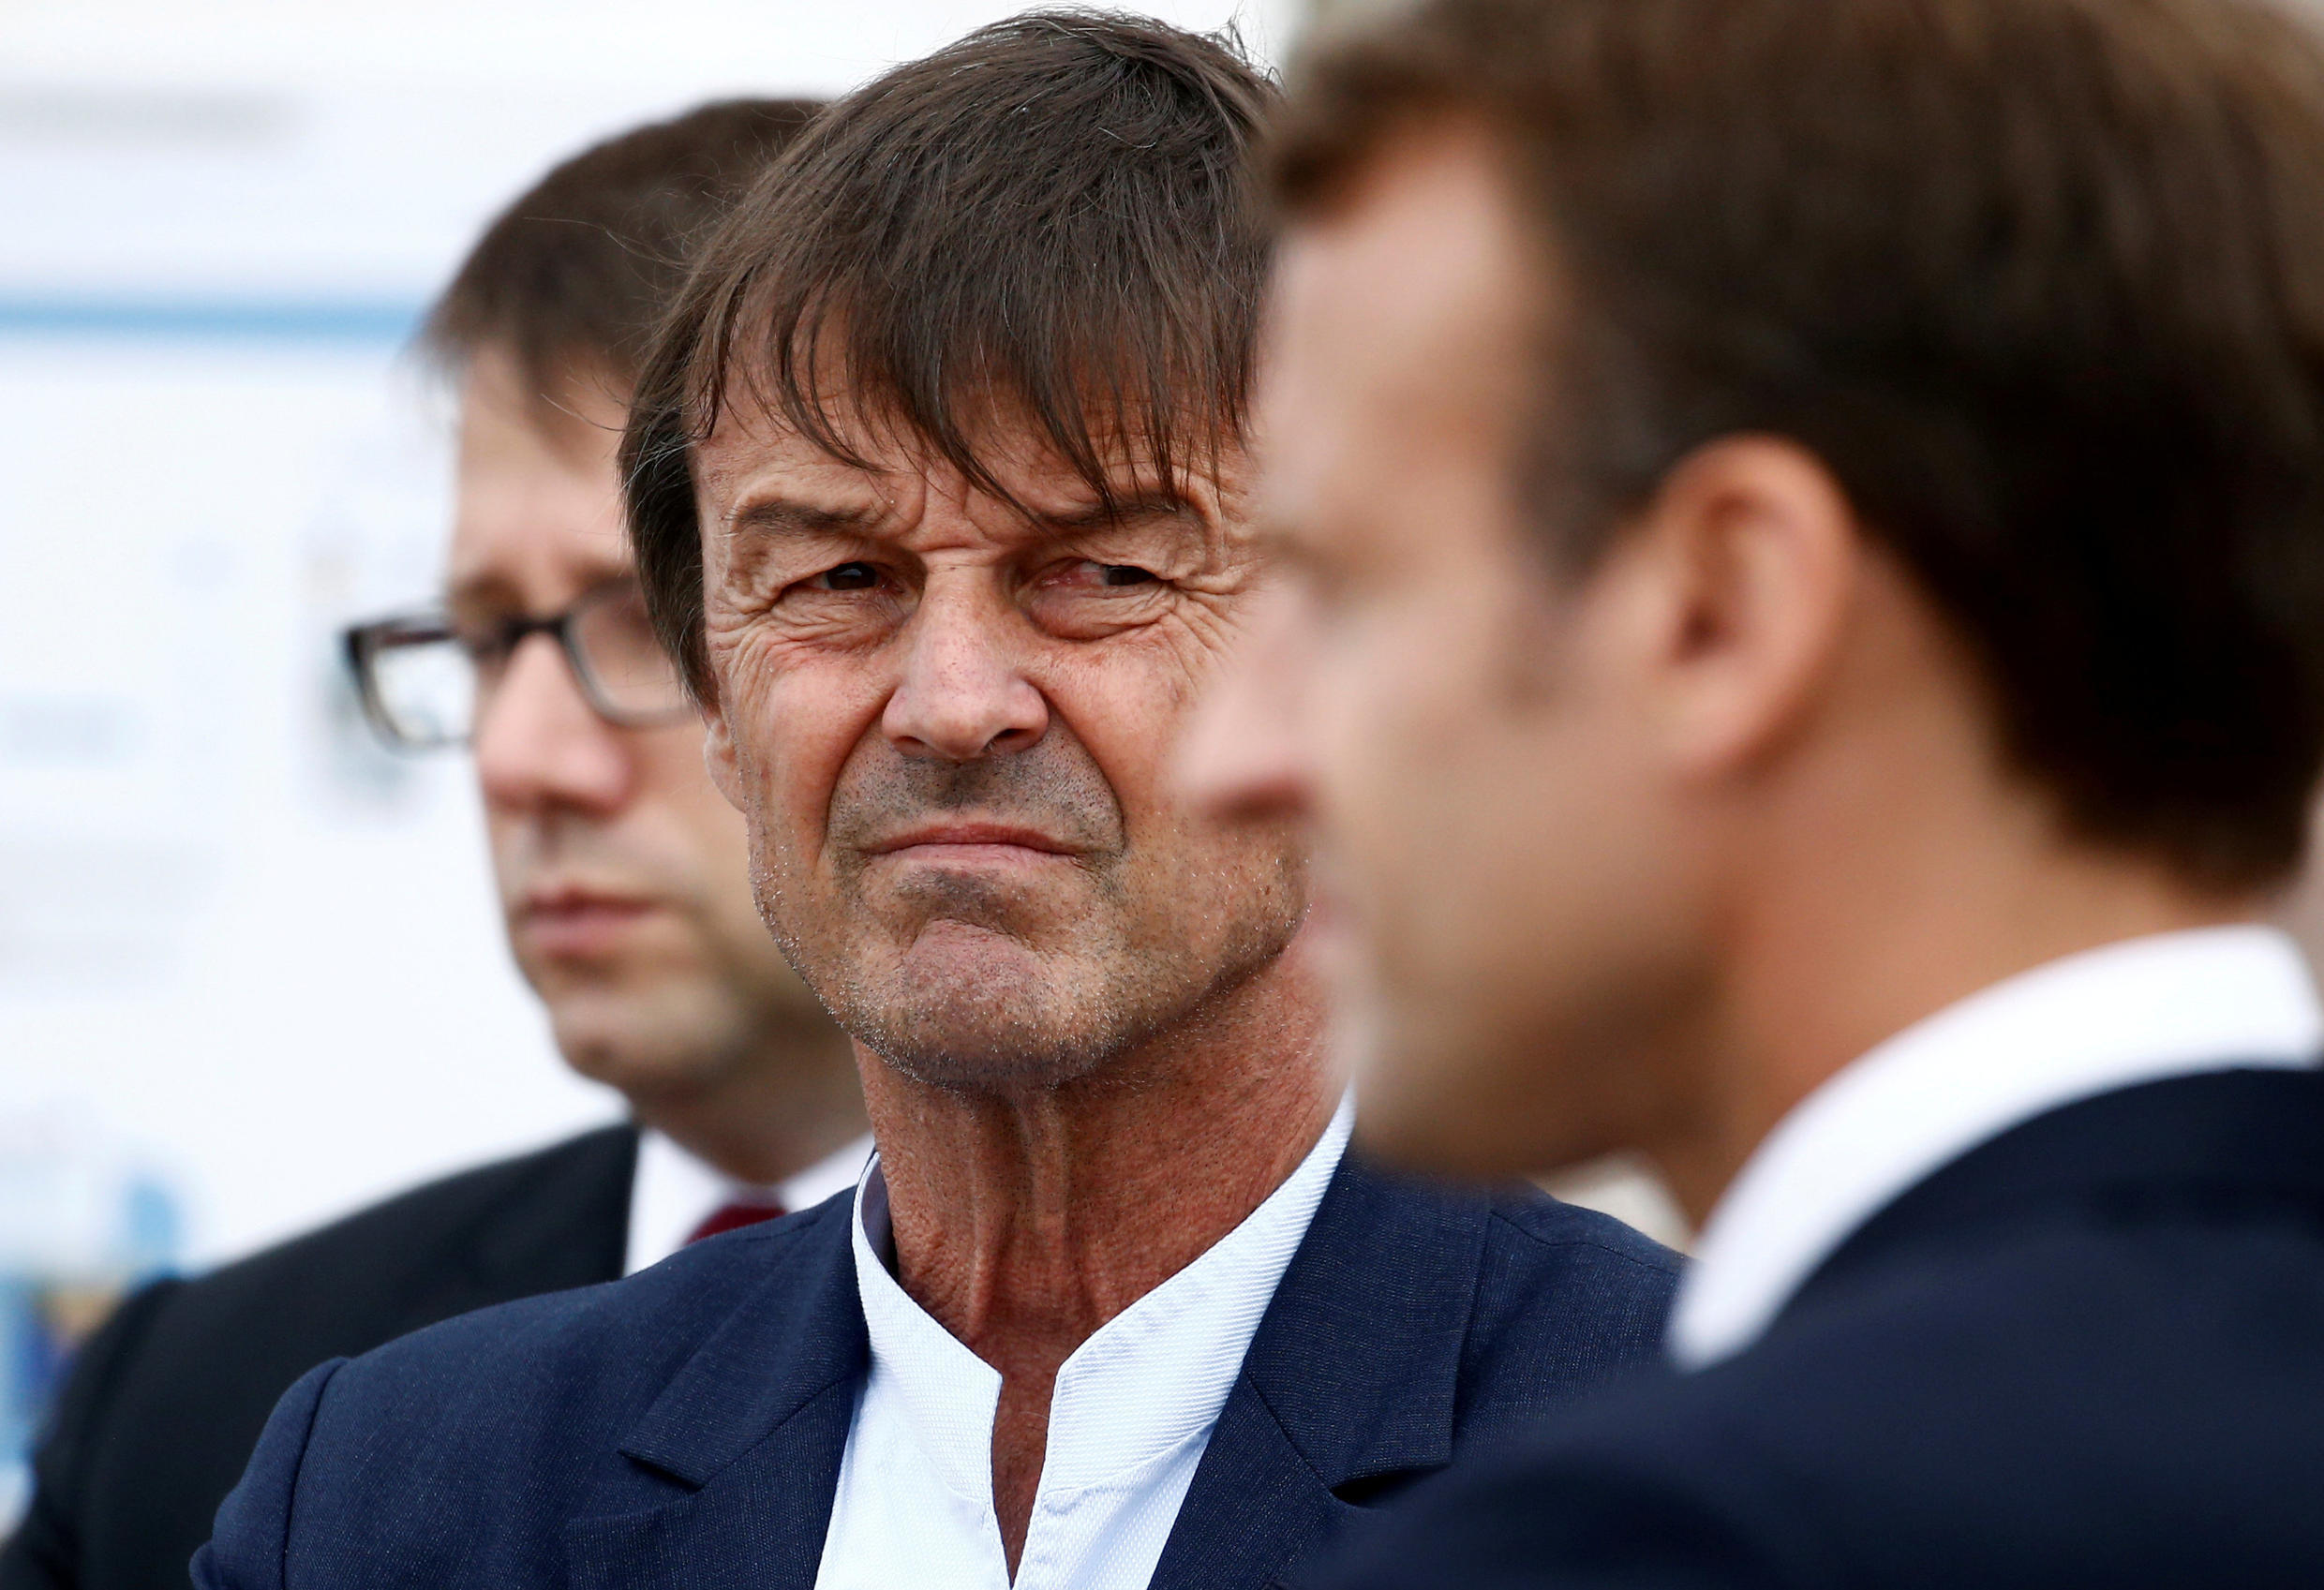 The resignation of popular former Environment minister Nicolas Hulot in August 2018 came as a blow for Macron's government. (both pictured here at Brittany, France, 20 June 2018).